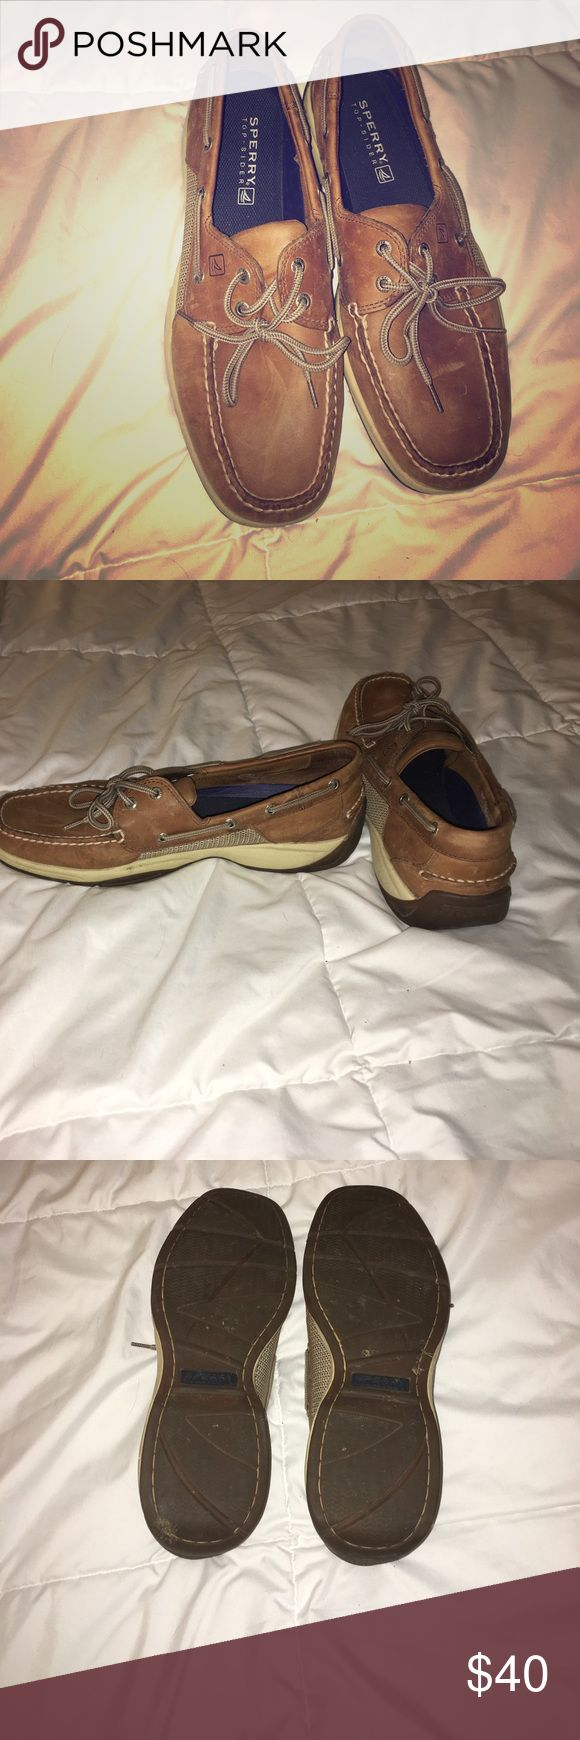 Men's Sperry Boat Shoes Very gently worn men's Sperry boat shoes Sperry Top-Sider Shoes Boat Shoes